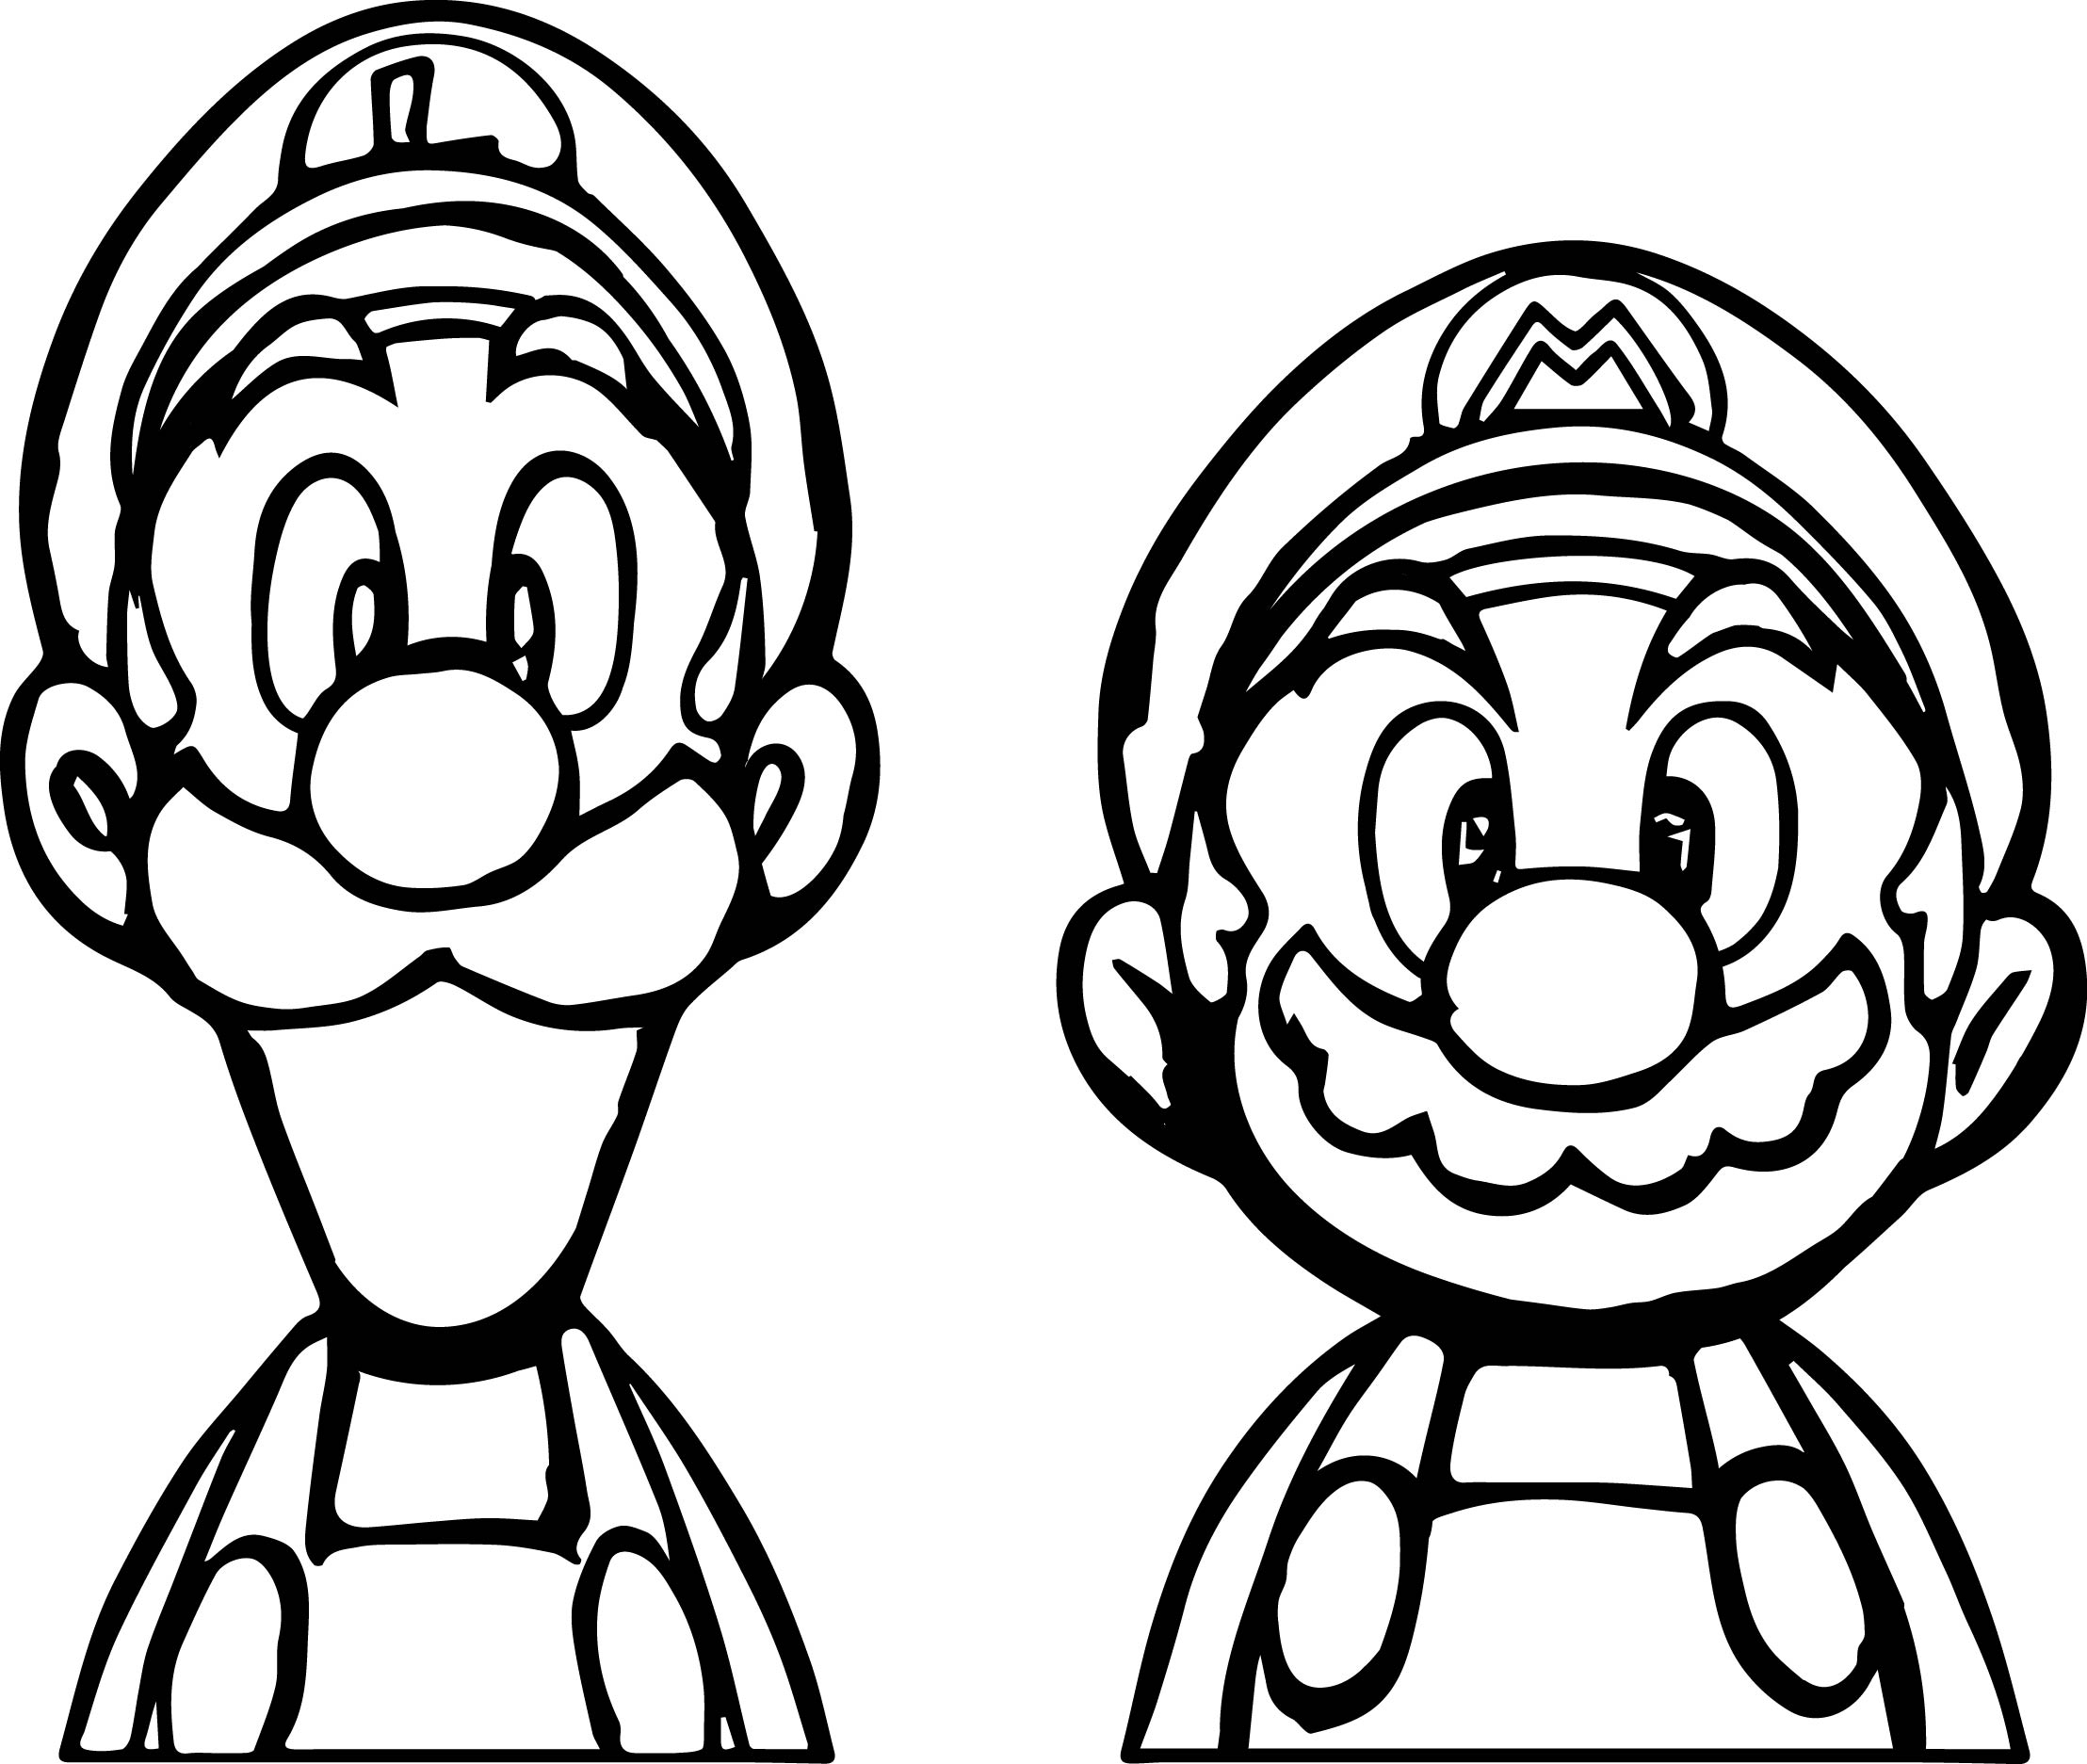 Super Mario Coloring Pages Free At Getdrawings Com Free For